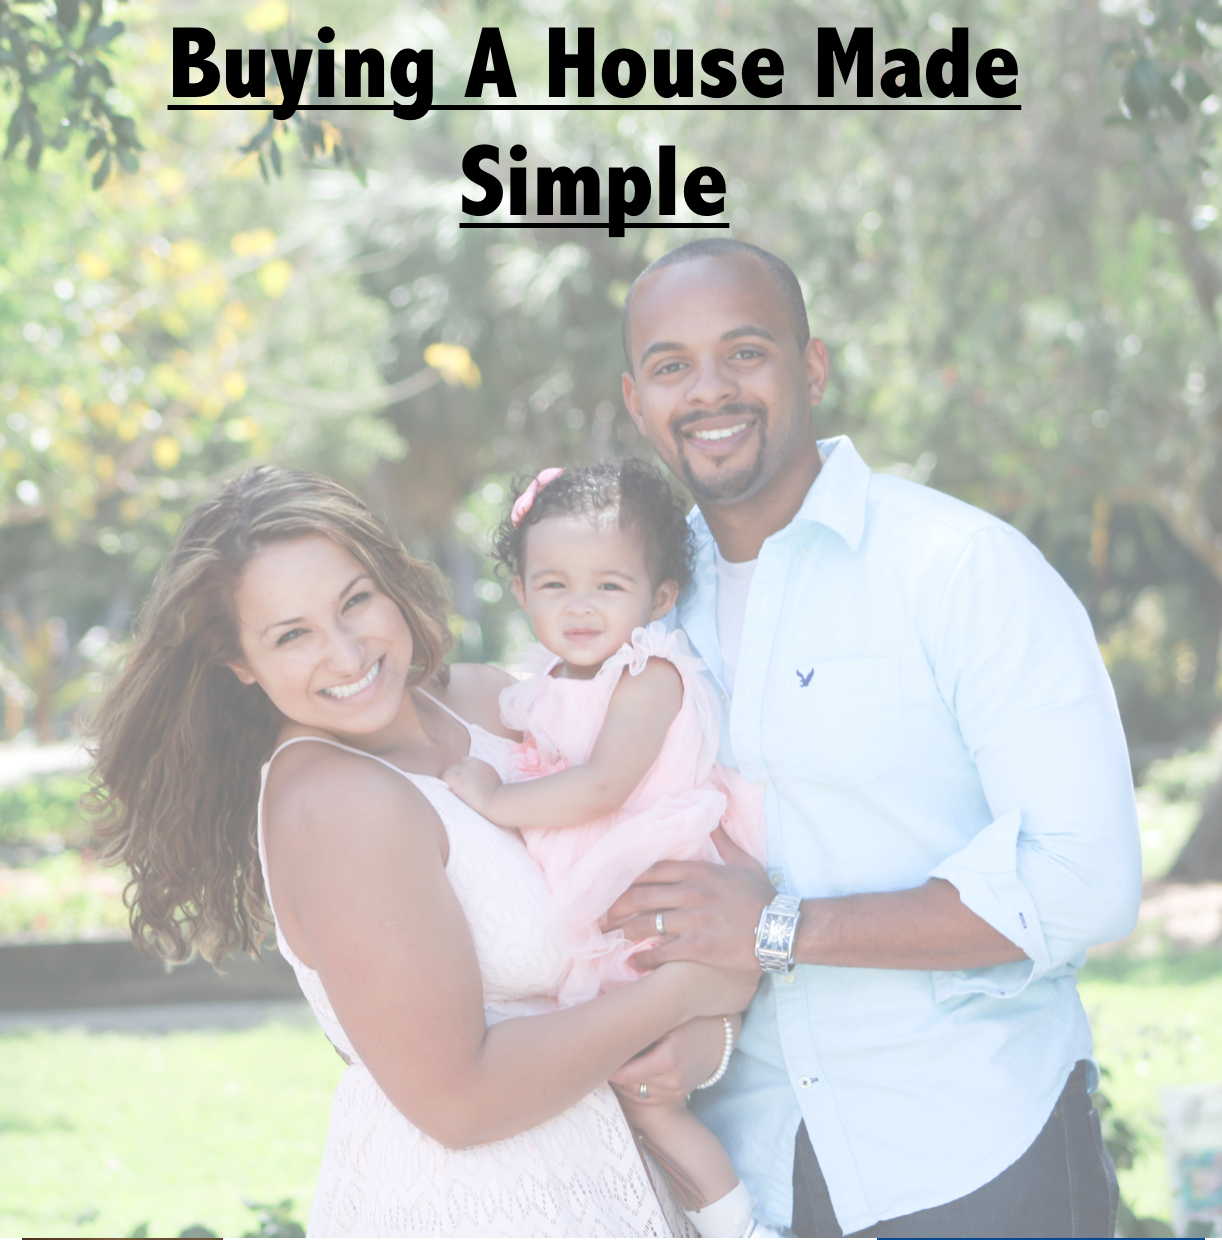 how to buy a house buying a house how to buy a home buying a home how do i buy a house i need help b